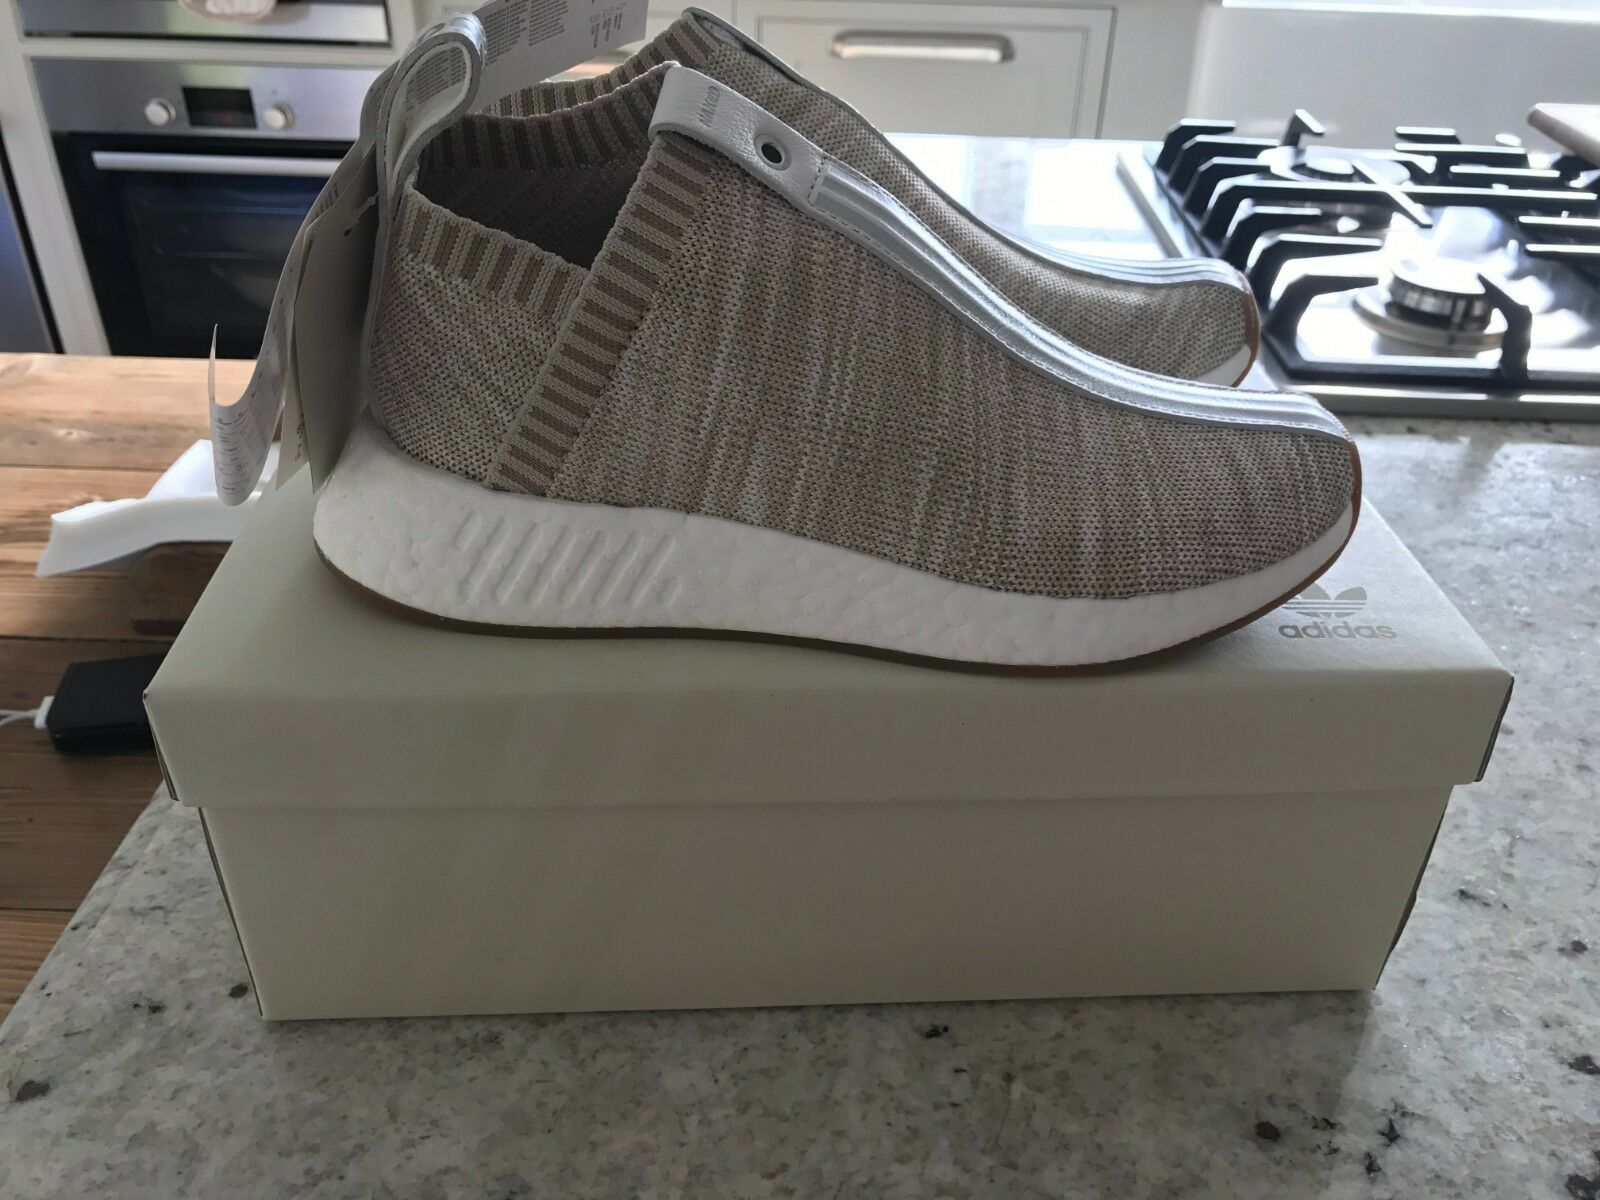 Adidas NMD NMD NMD CS2 x Naked x Ronnie Fieg Beige US 7 NUOVE 7559a0